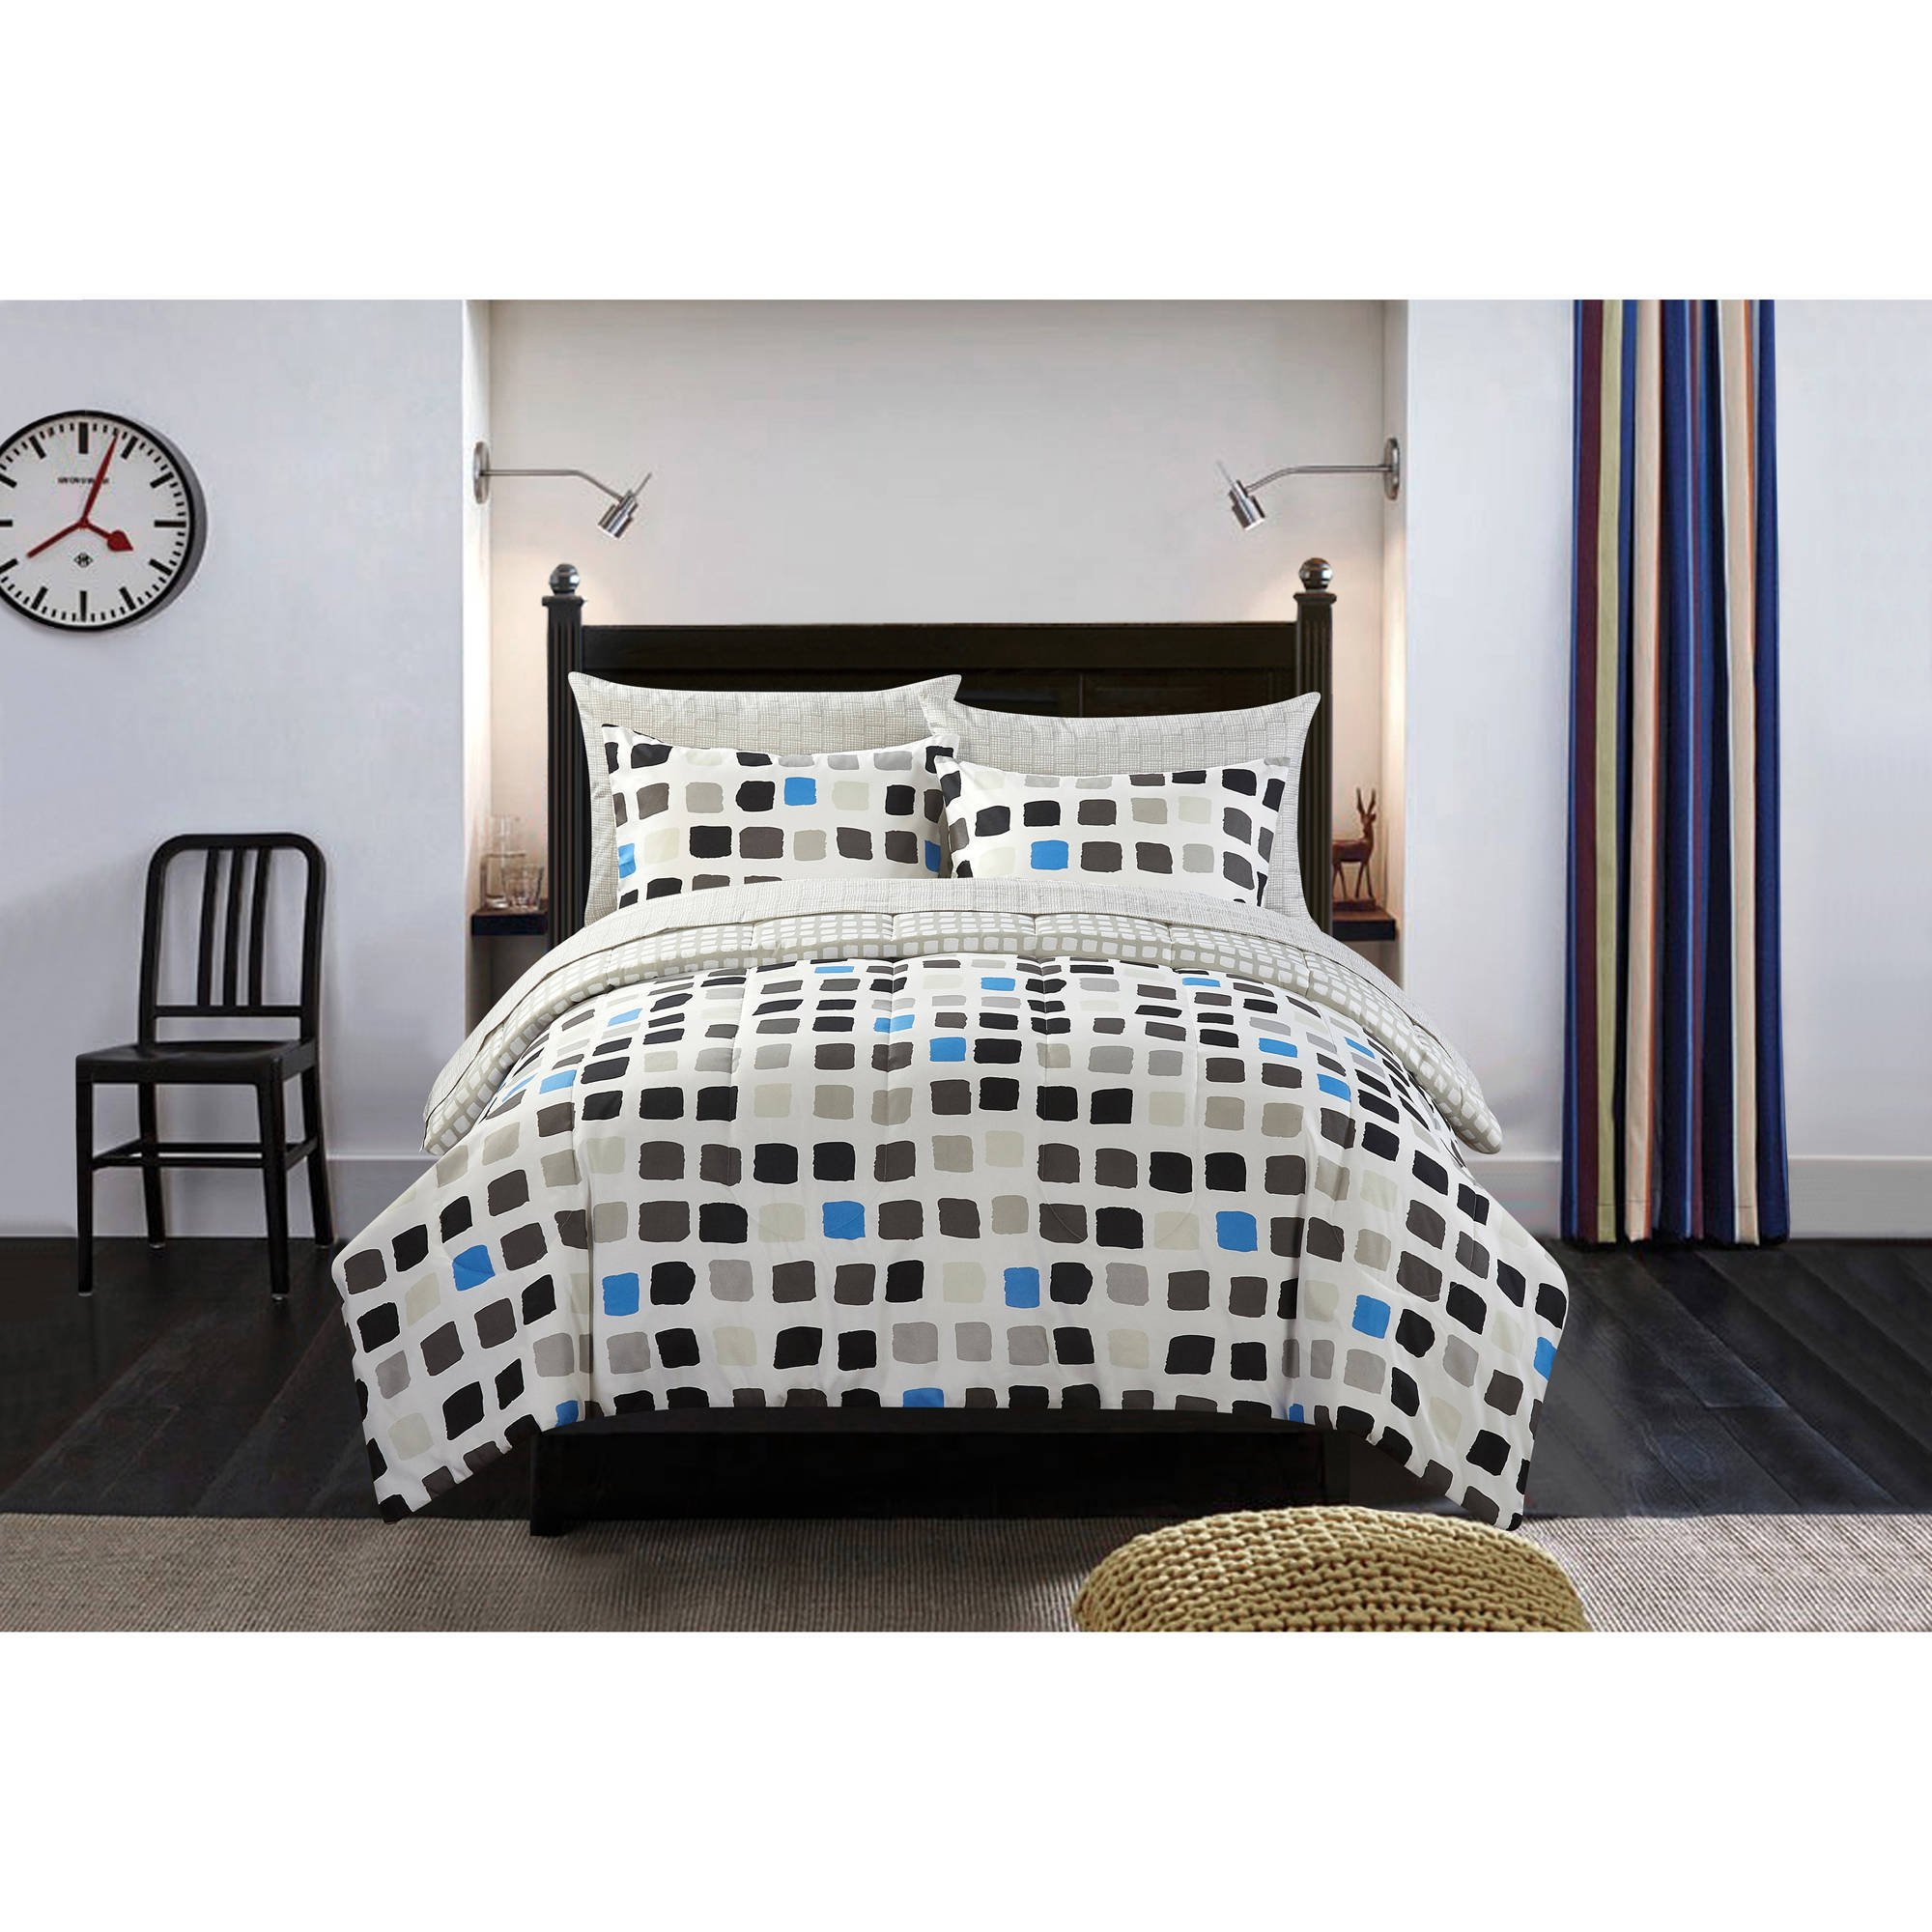 7 Piece Black White Metro Block Comforter Set Full, Dark Black Blue Grey Pixel Minecraft Printed Teen Themed, Reversible Chic Grey Silver Block Line Design Kids Bedding For Bedroom, Polyester